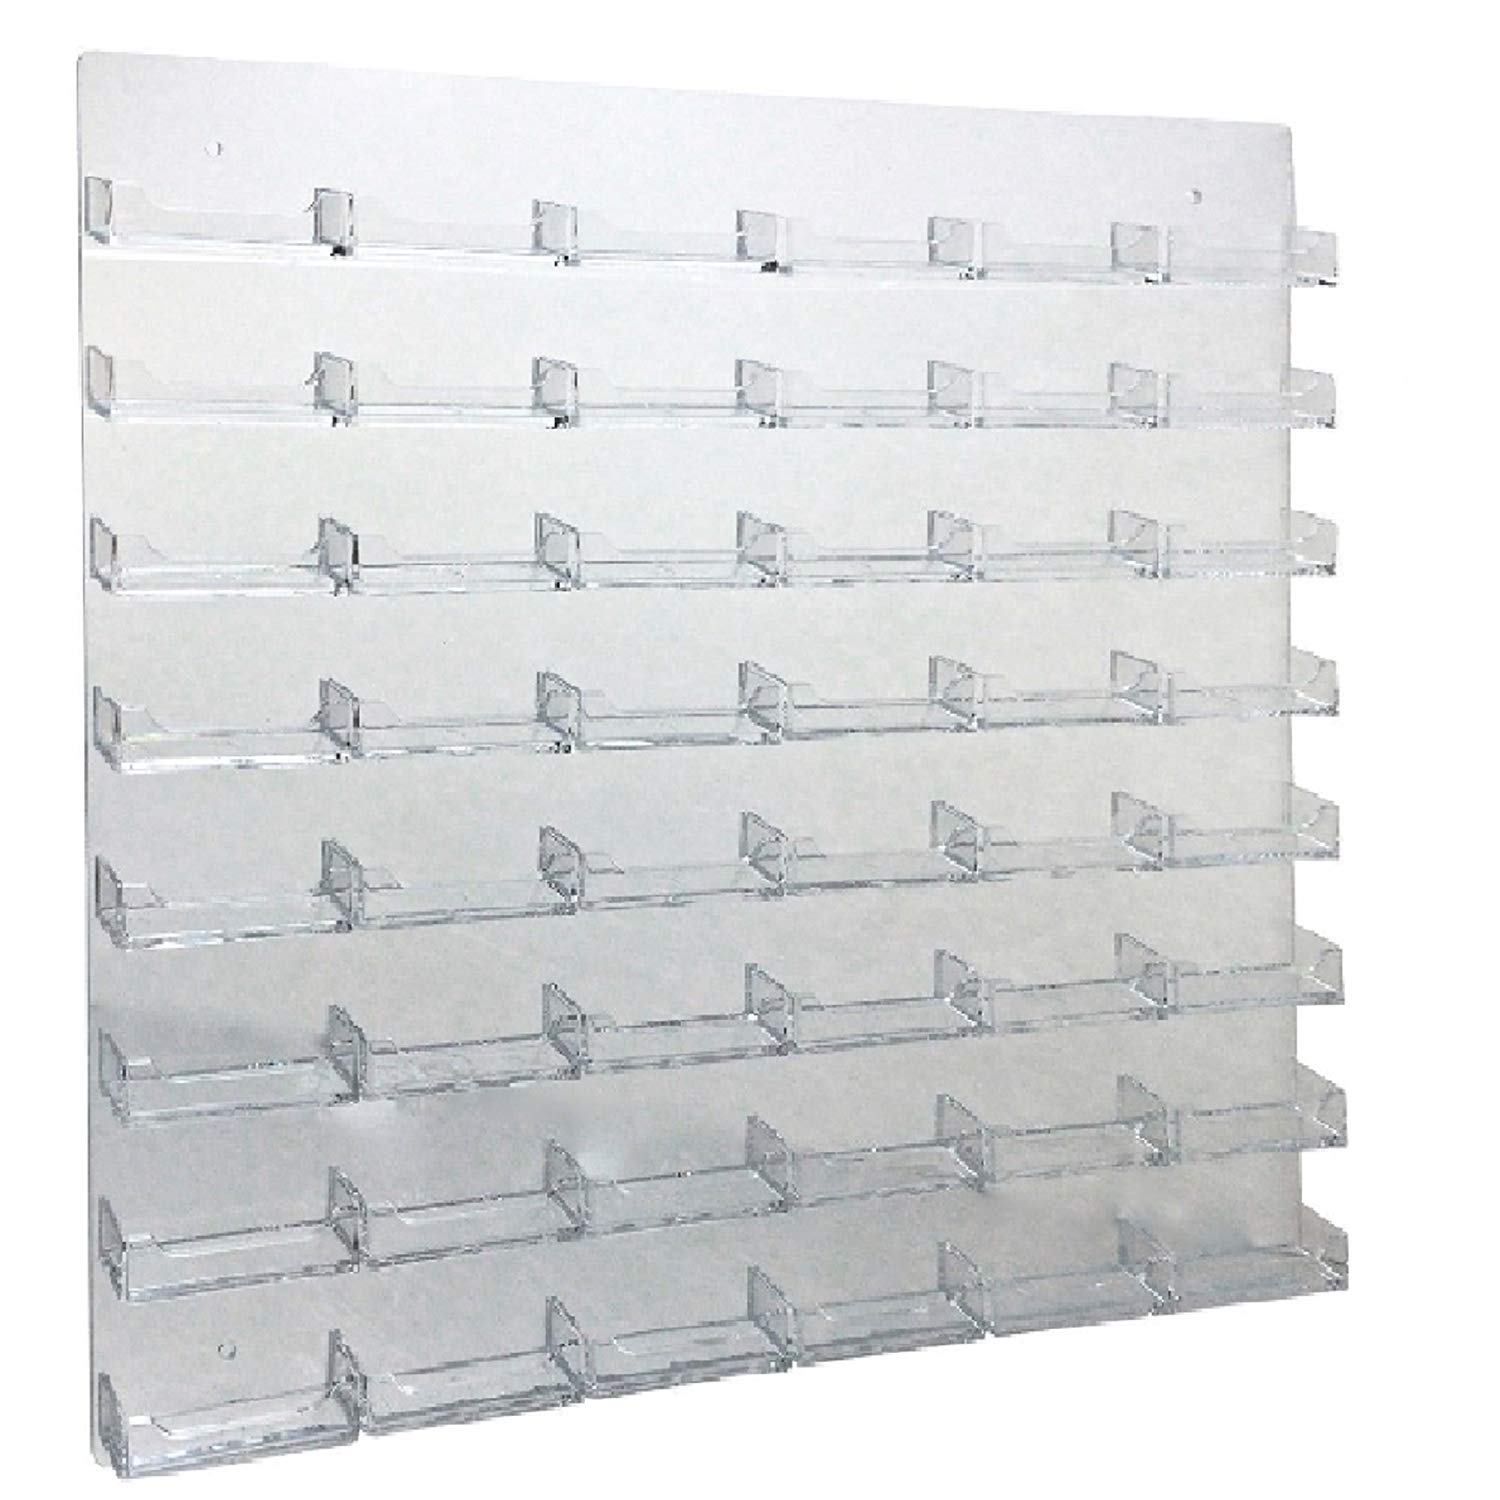 Cheap Sports Card Wall Display Find Sports Card Wall Display Deals